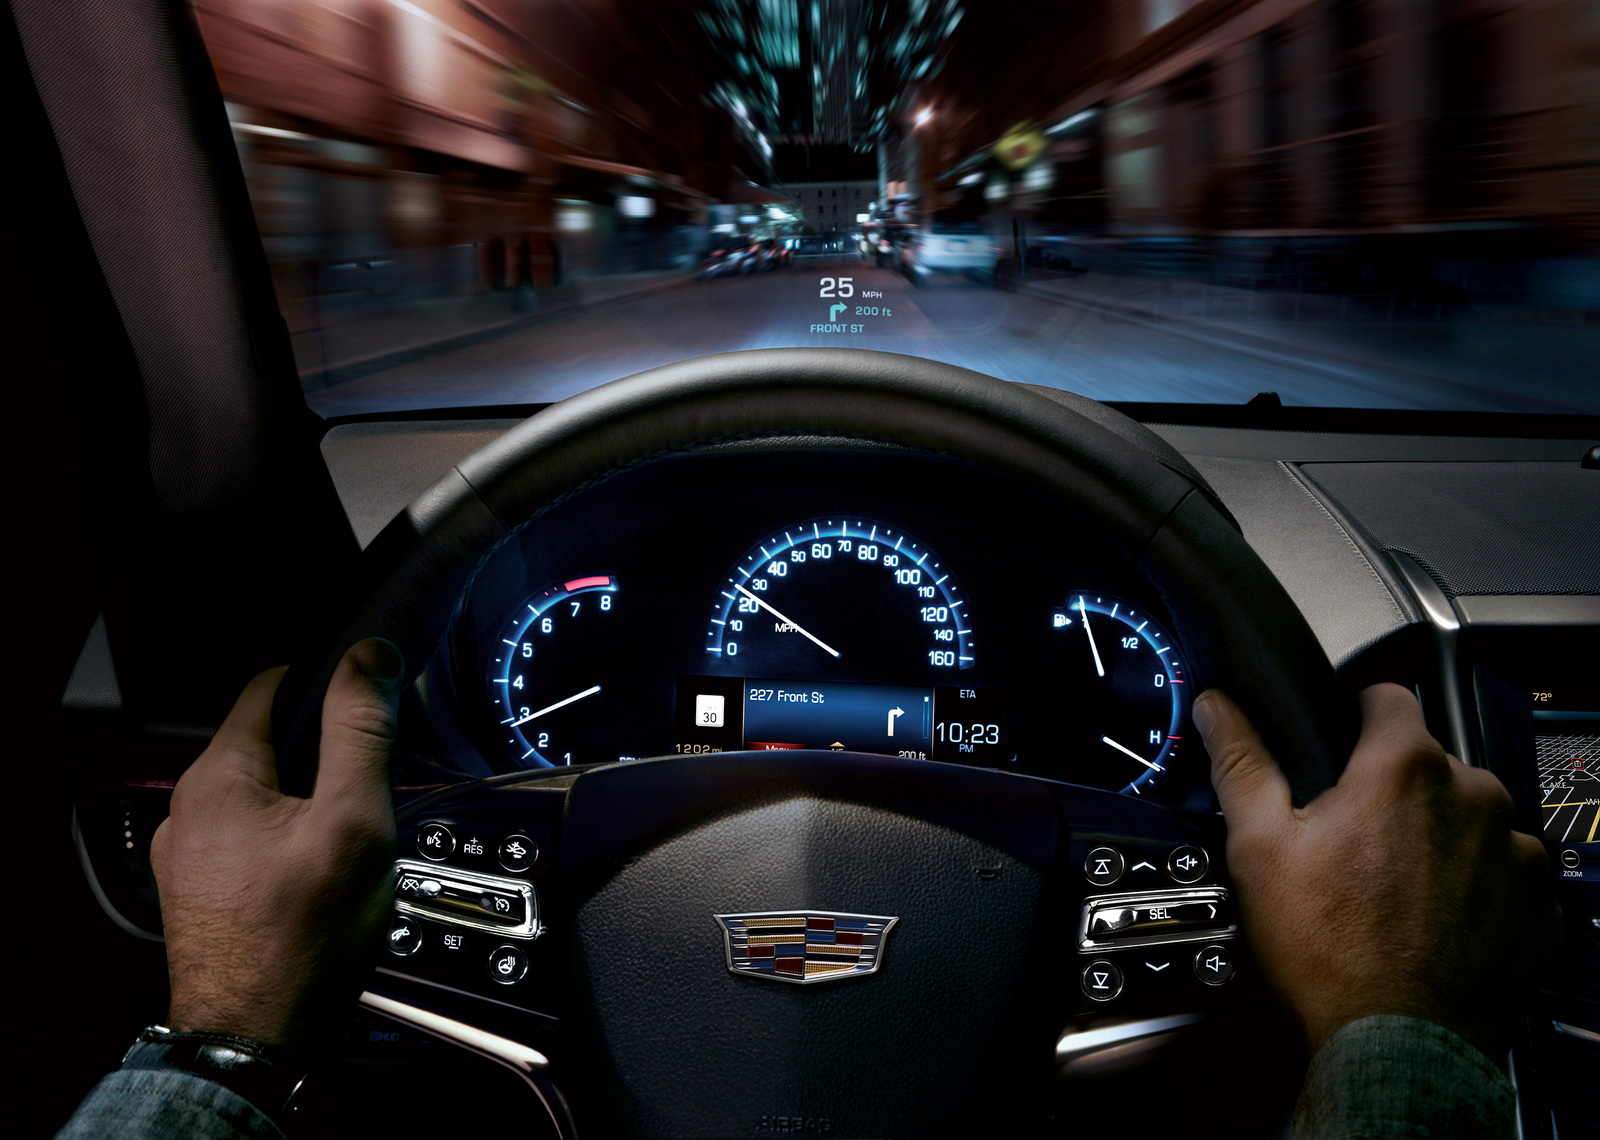 Image result for Modes of Selling Car, Oneshift Playing Its Part